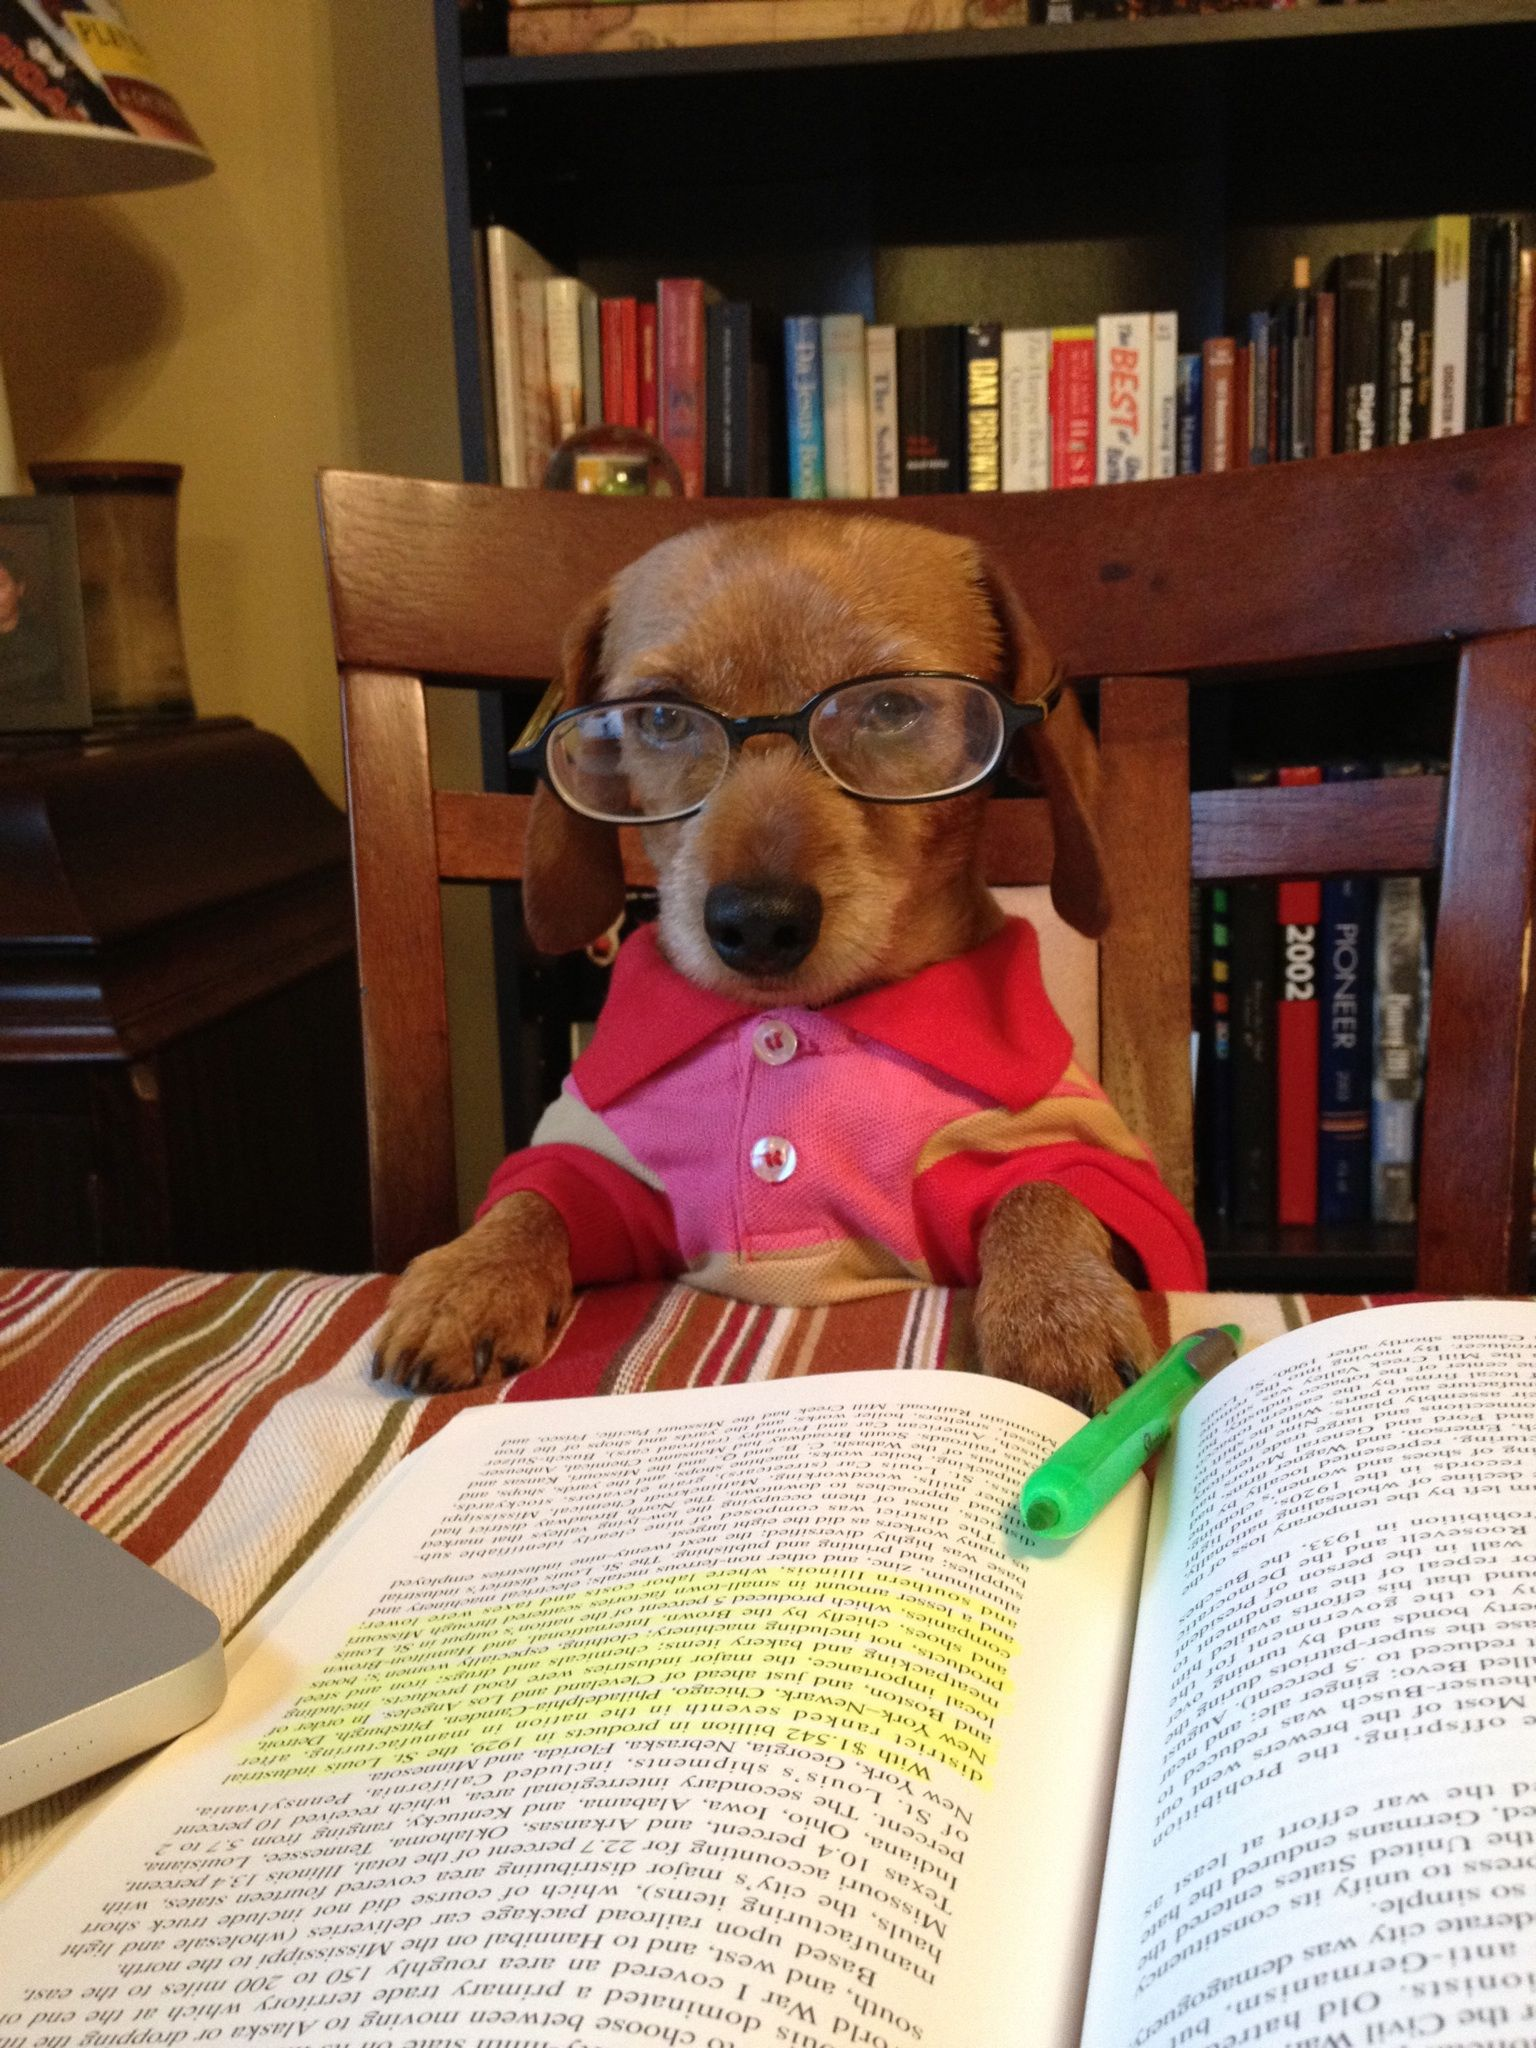 writing his memoirs. Dogs, Pets, Cute animals